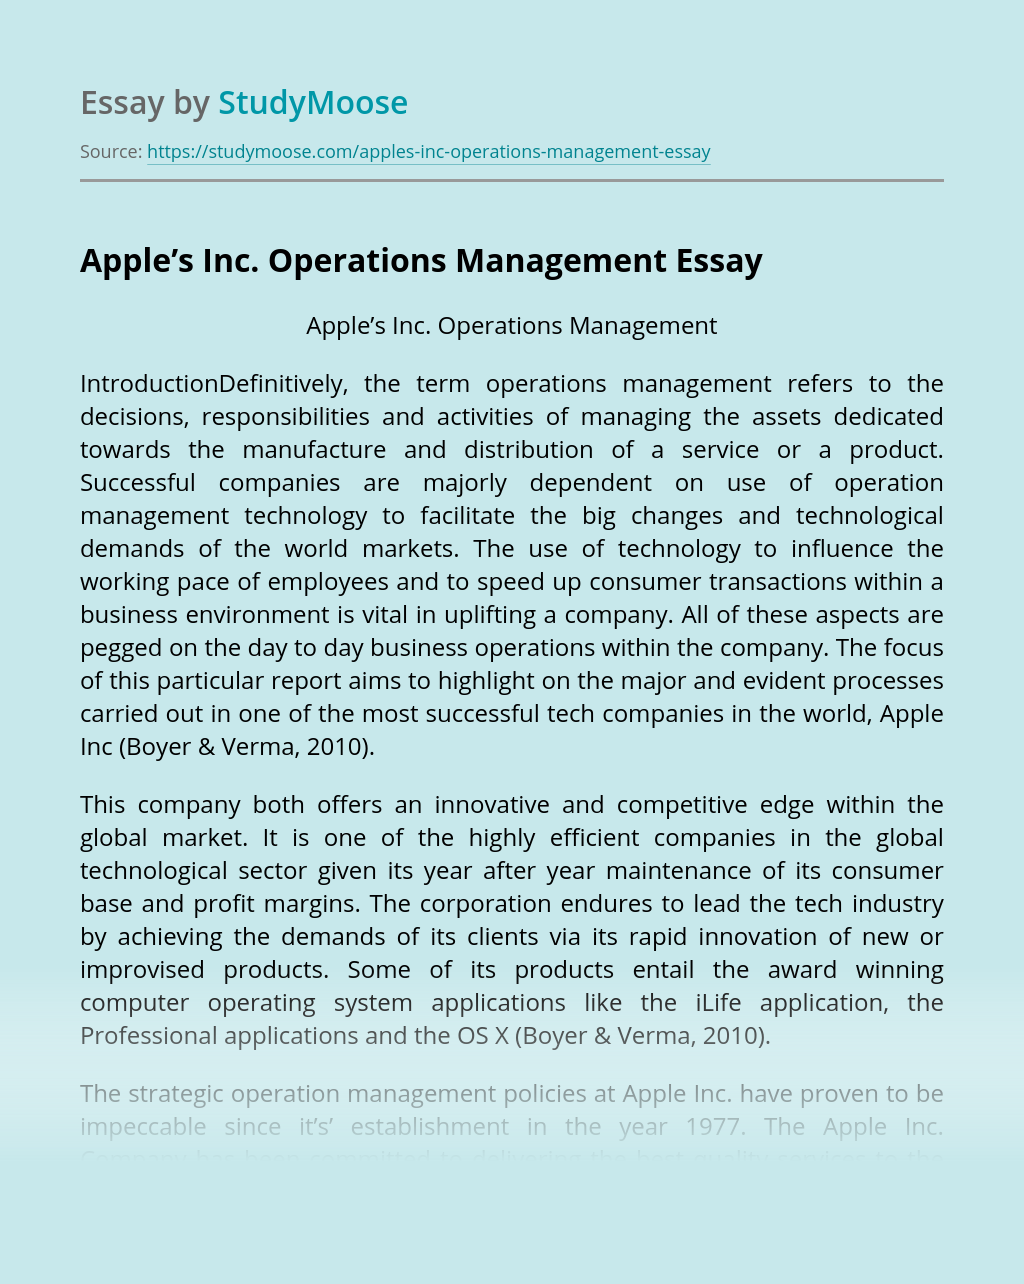 Apple's Inc. Operations Management